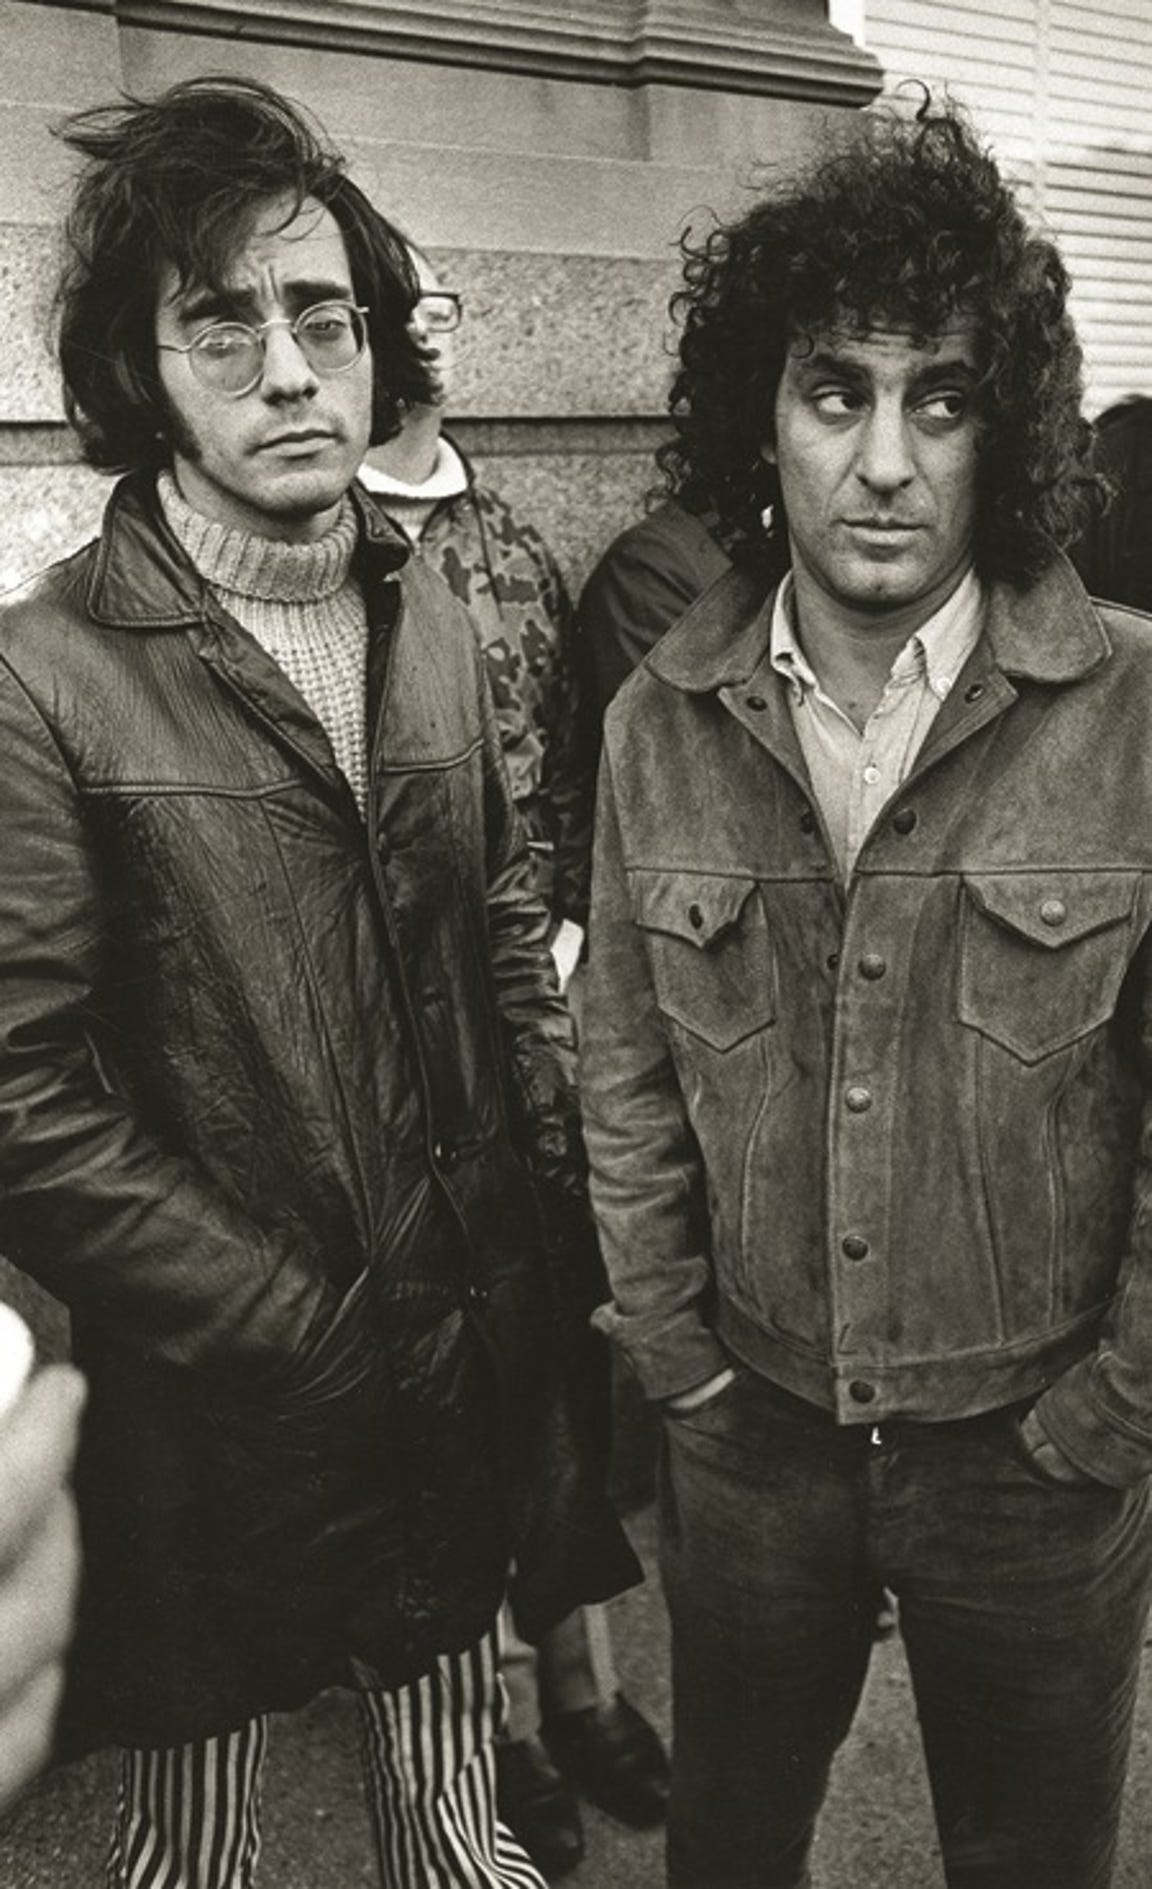 Abe Peck (left), former editor of the underground newspaper, the Chicago Seed, is pictured with Yippie co-founder Abbie Hoffman.